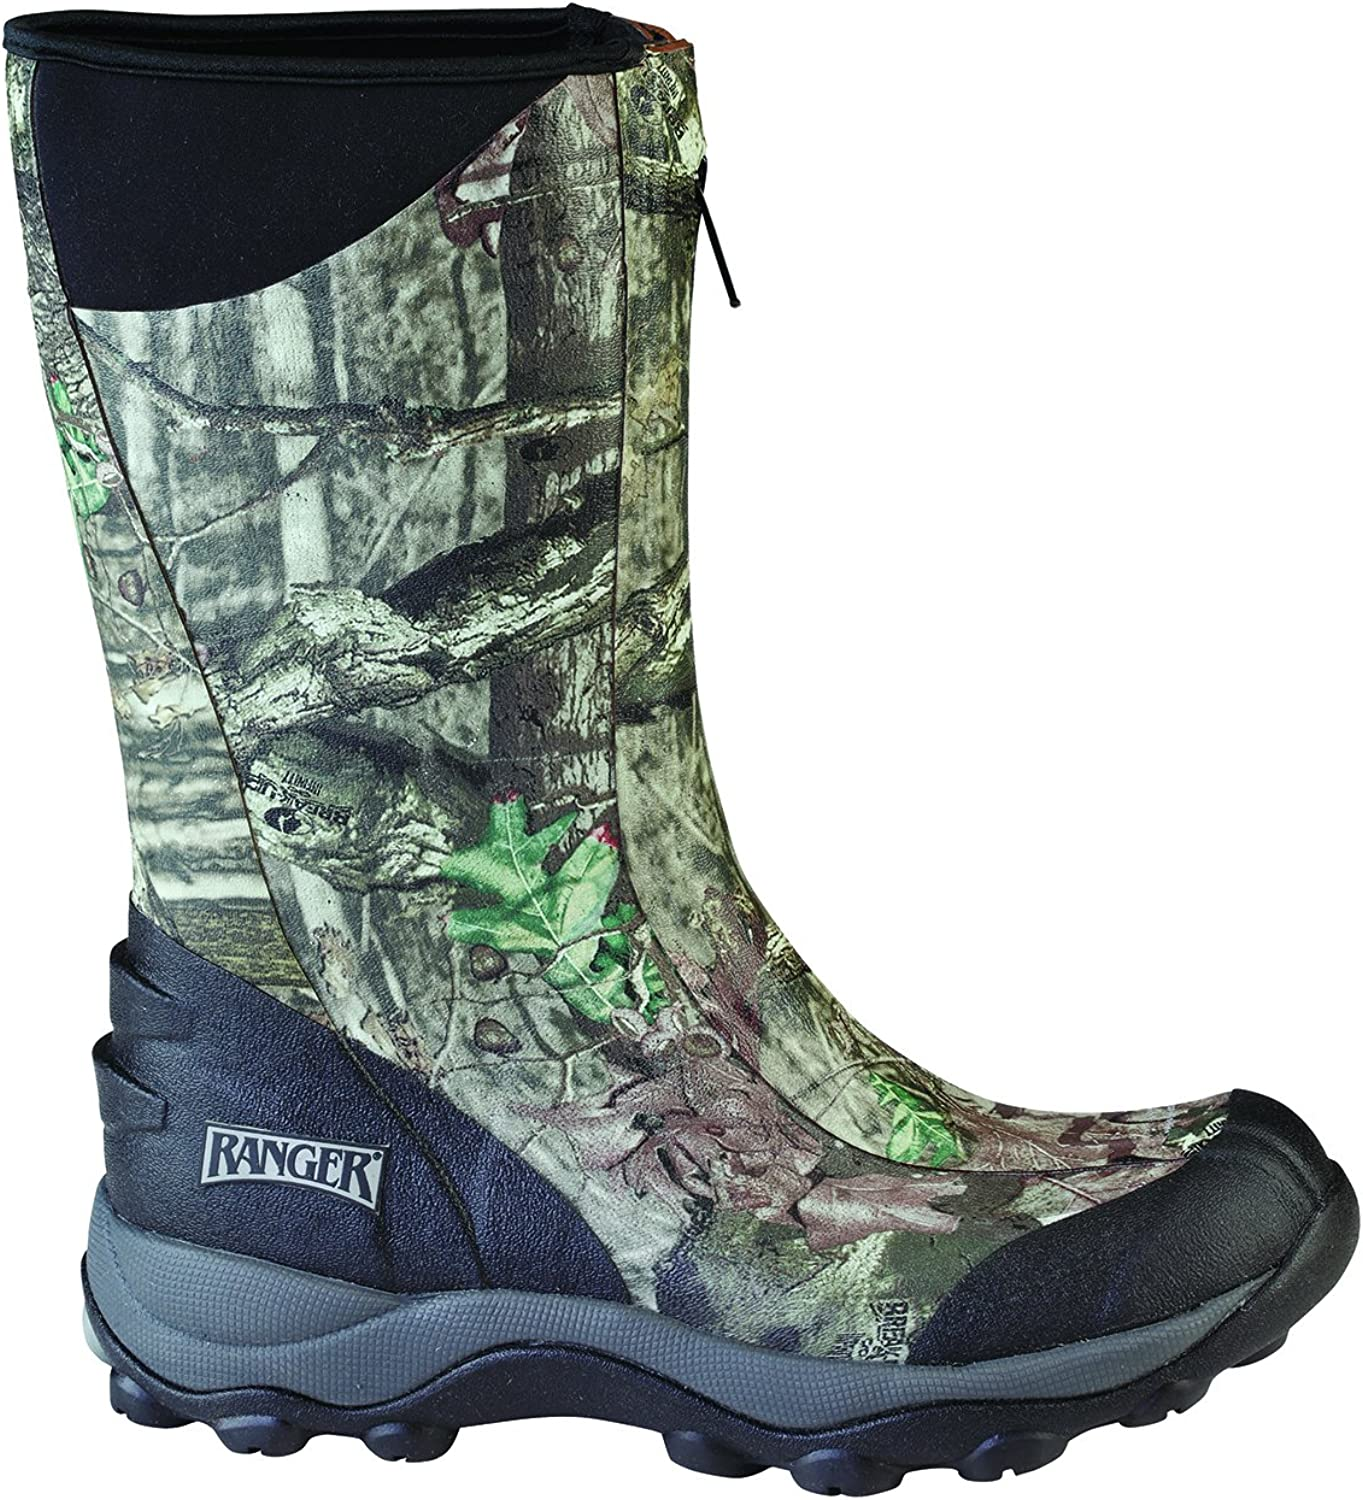 Ranger Pike Collection 13  Men's Rubber Boots with 2 mm Neoprene Bootie, Realtree AP (R21813N)